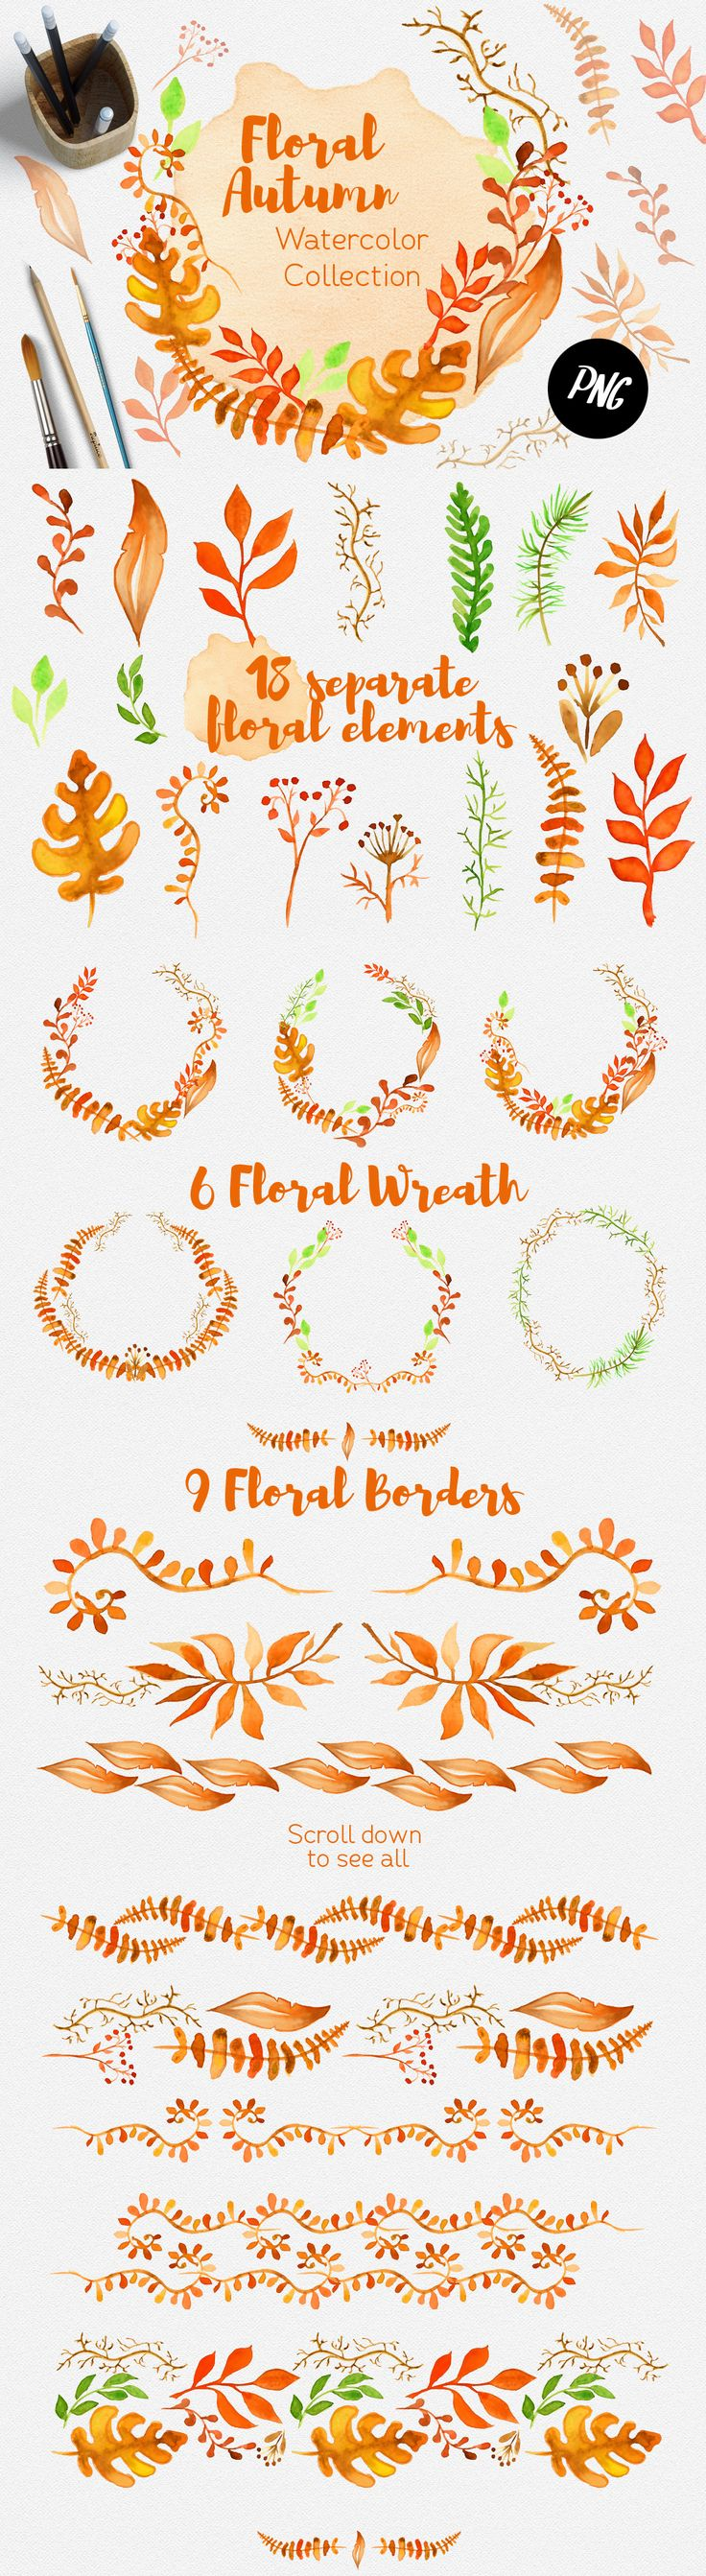 Floral Autumn Watercolor collection by Evgeniia on @creativemarket